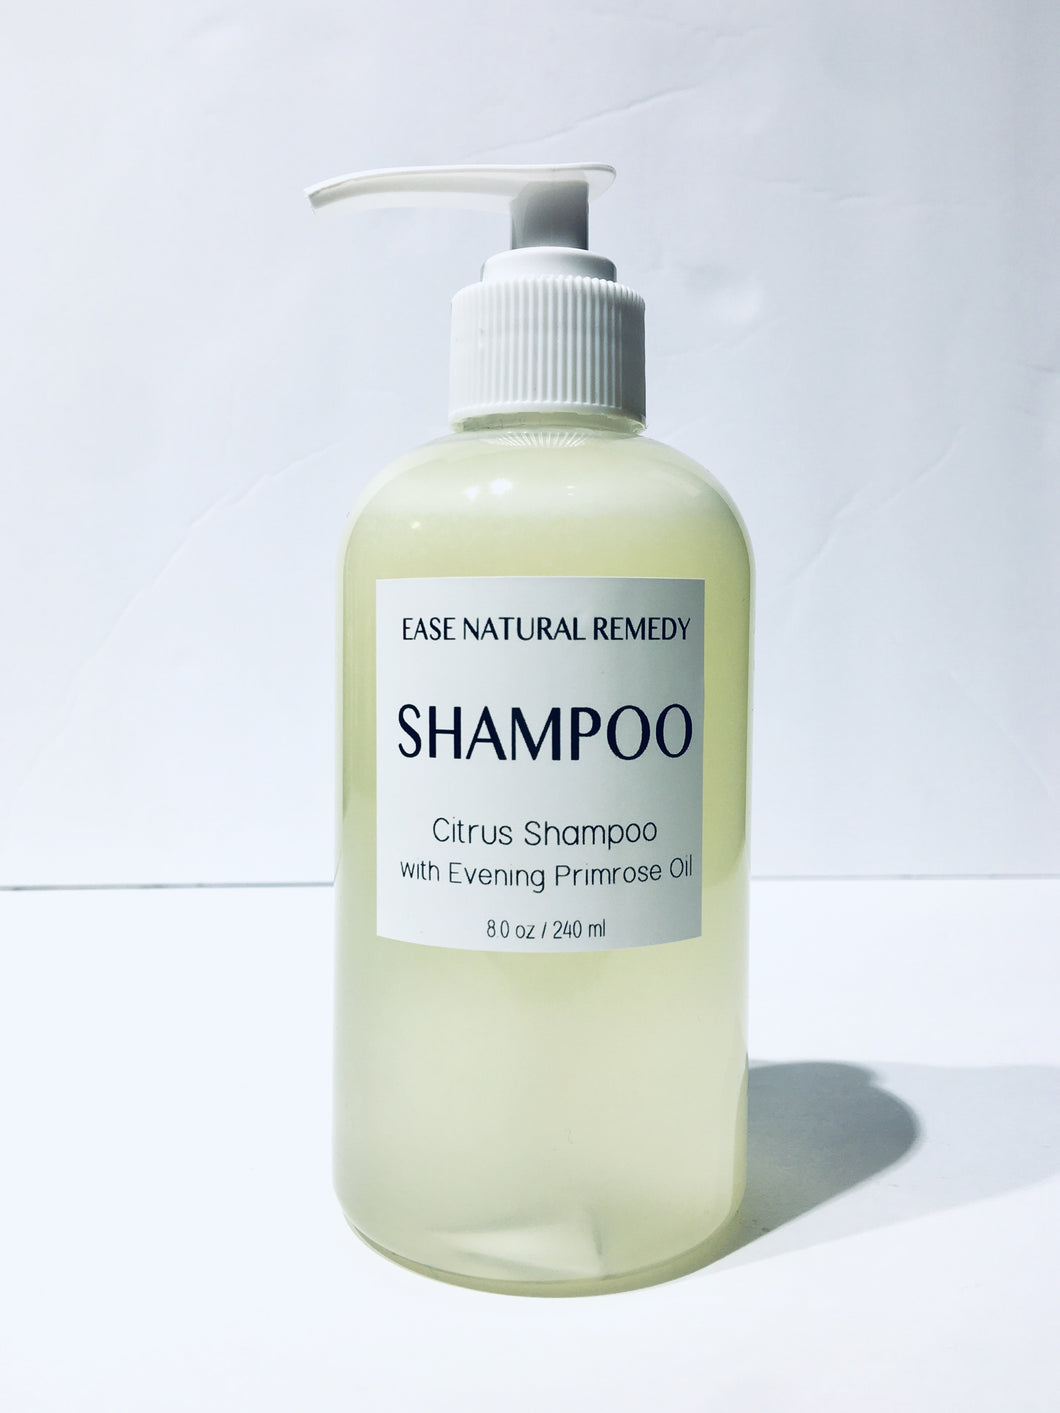 SHAMPOO - 100% Natural Citrus Shampoo